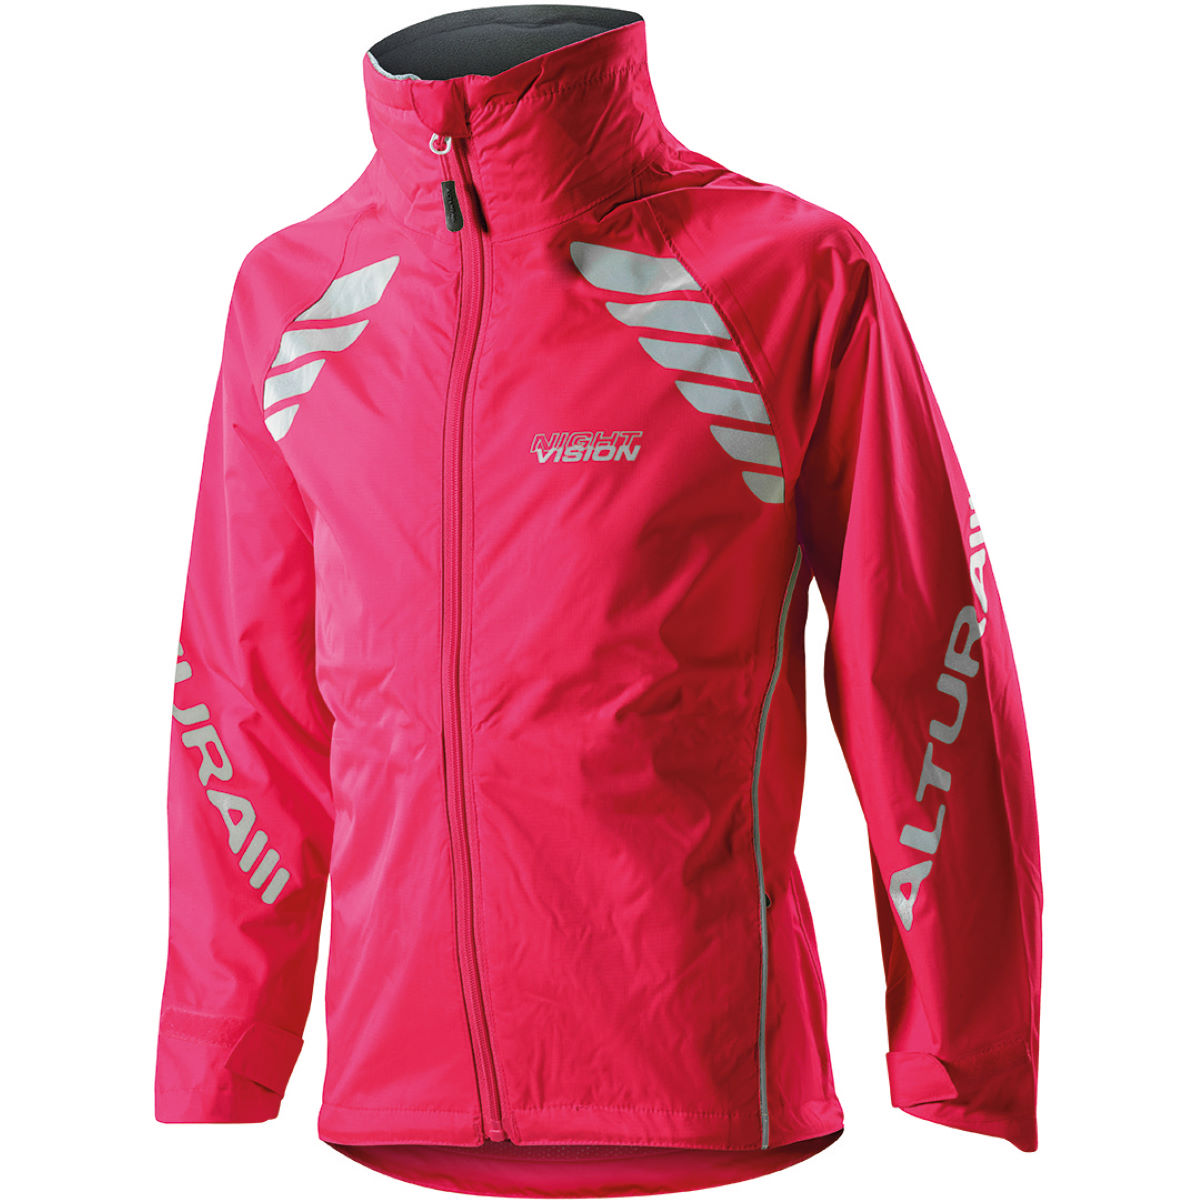 Veste Enfant Altura Night Vision - 10-12 years Rose Vestes imperméables vélo